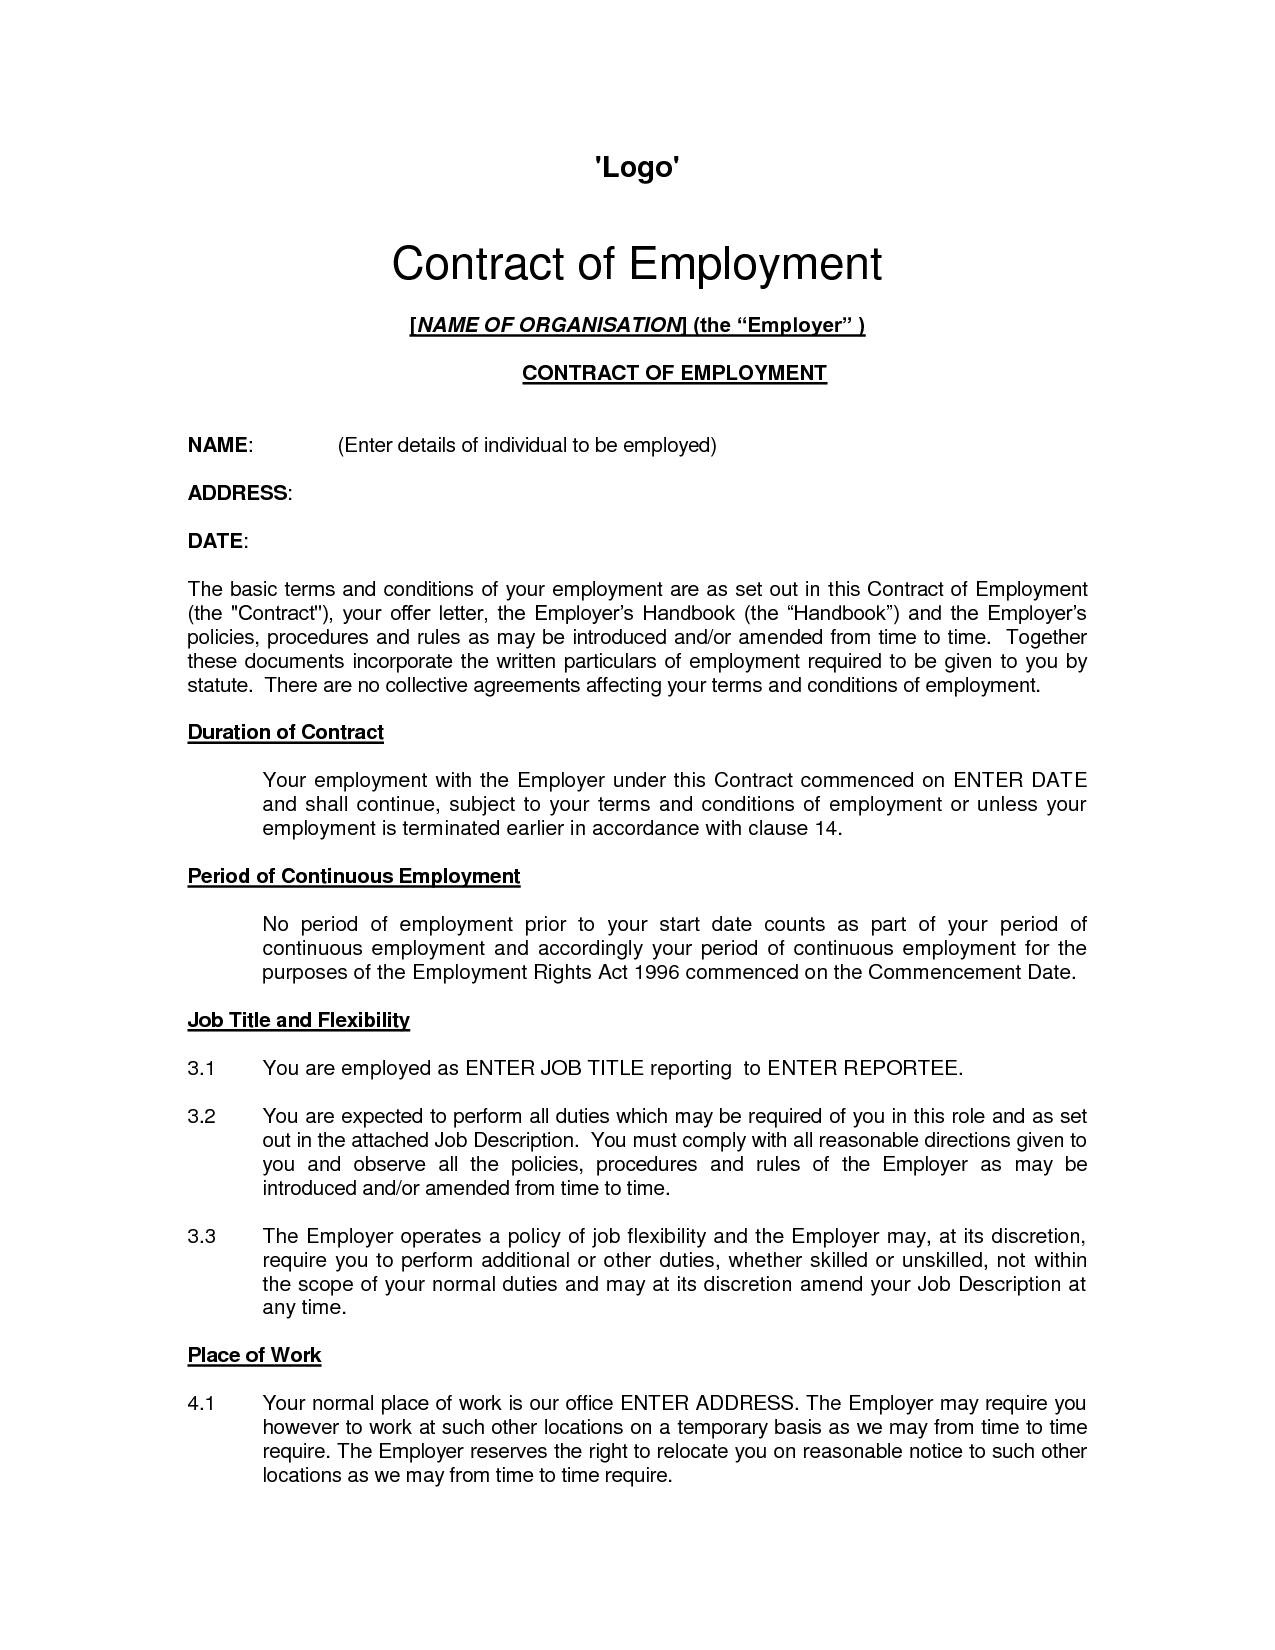 standard contract of employment template - free printable employment contract sample form generic